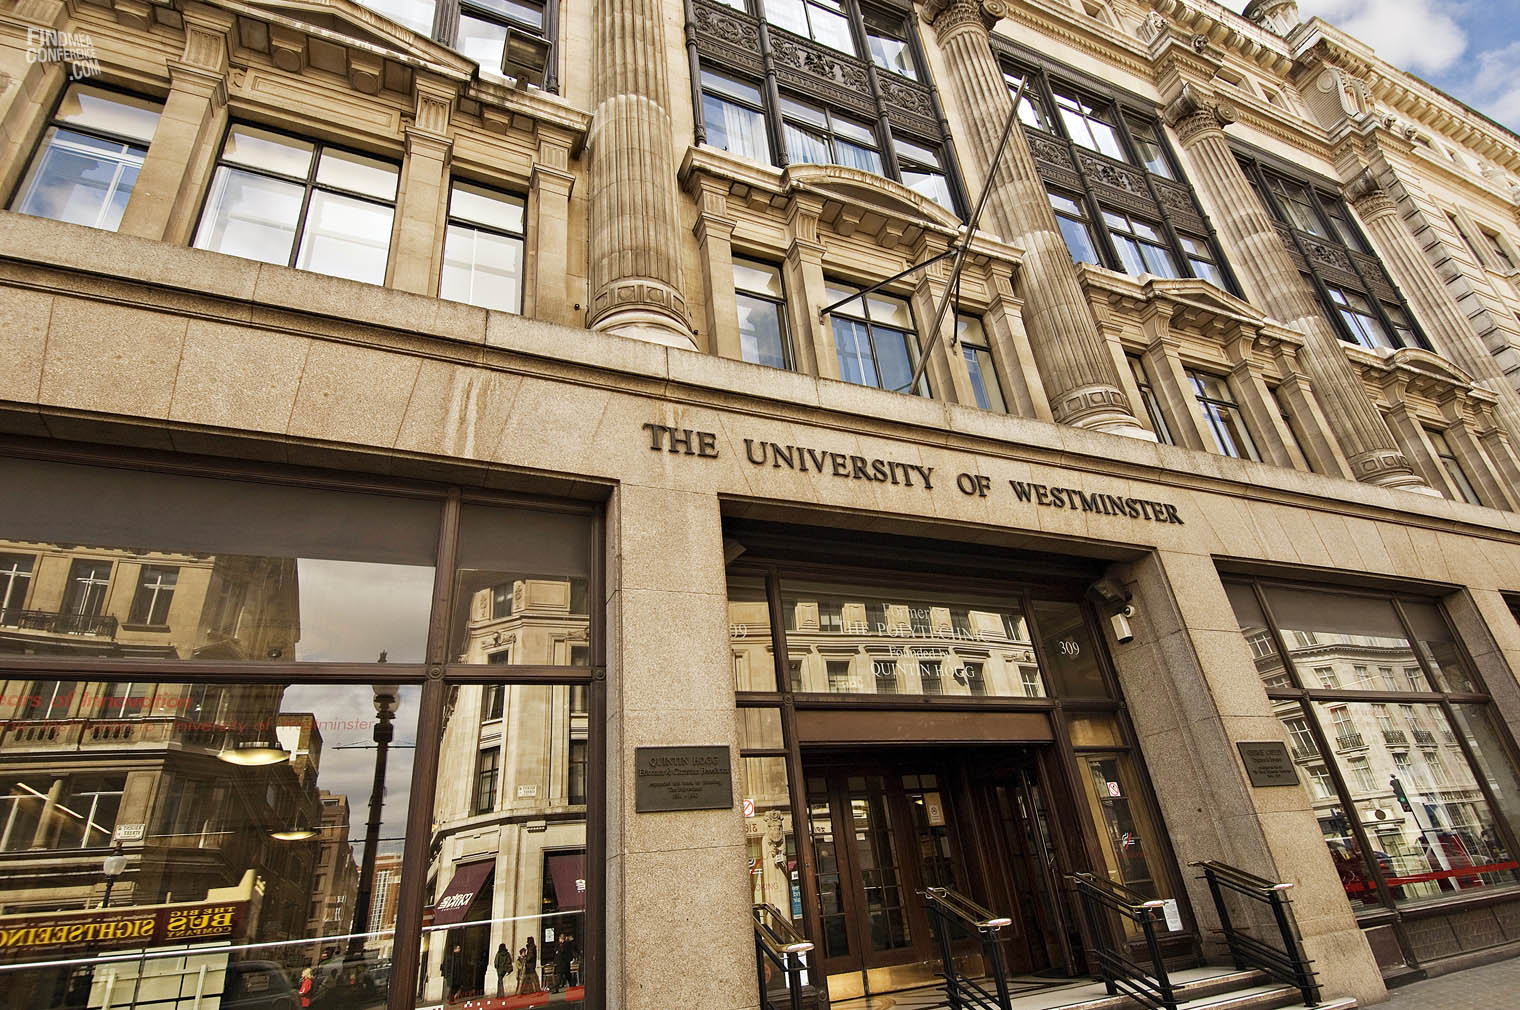 University-of-Westminster10.jpg